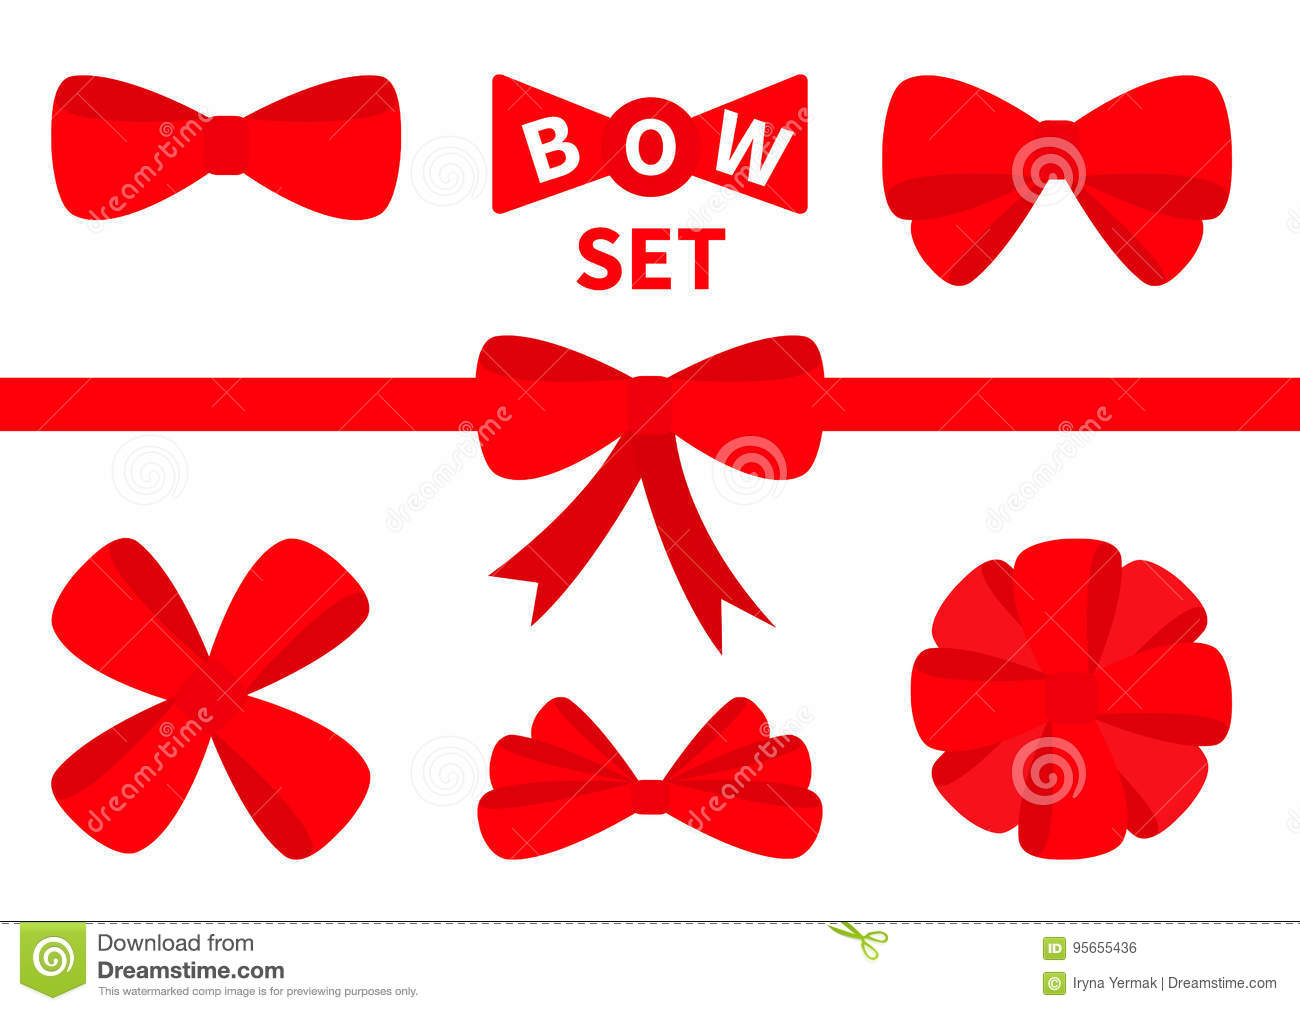 big red ribbon christmas bow icon set decoration element for giftbox present white background